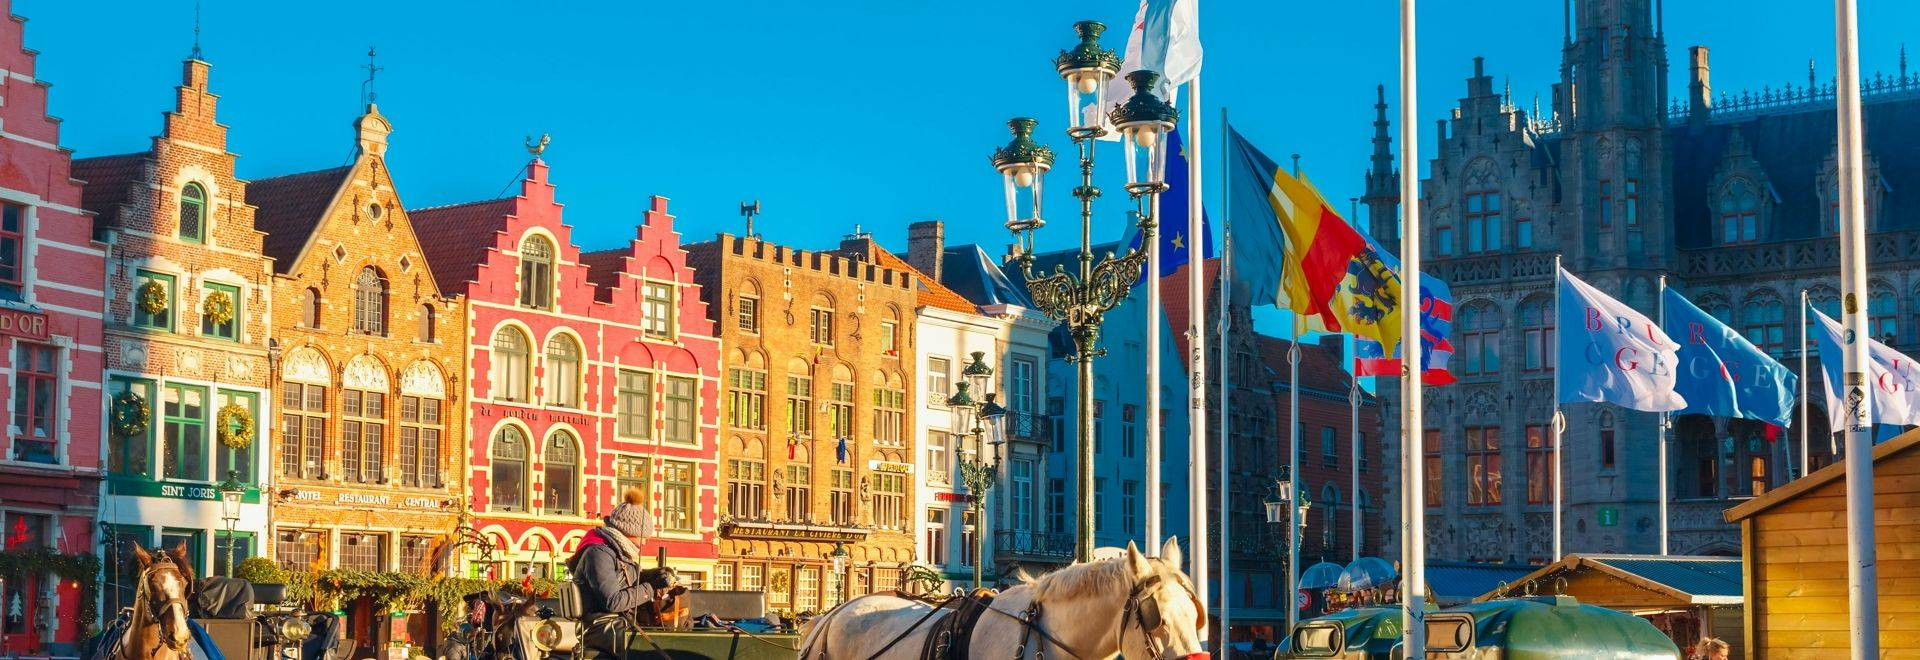 Shutterstock 243626431 Grote Markt Square Of Brugge